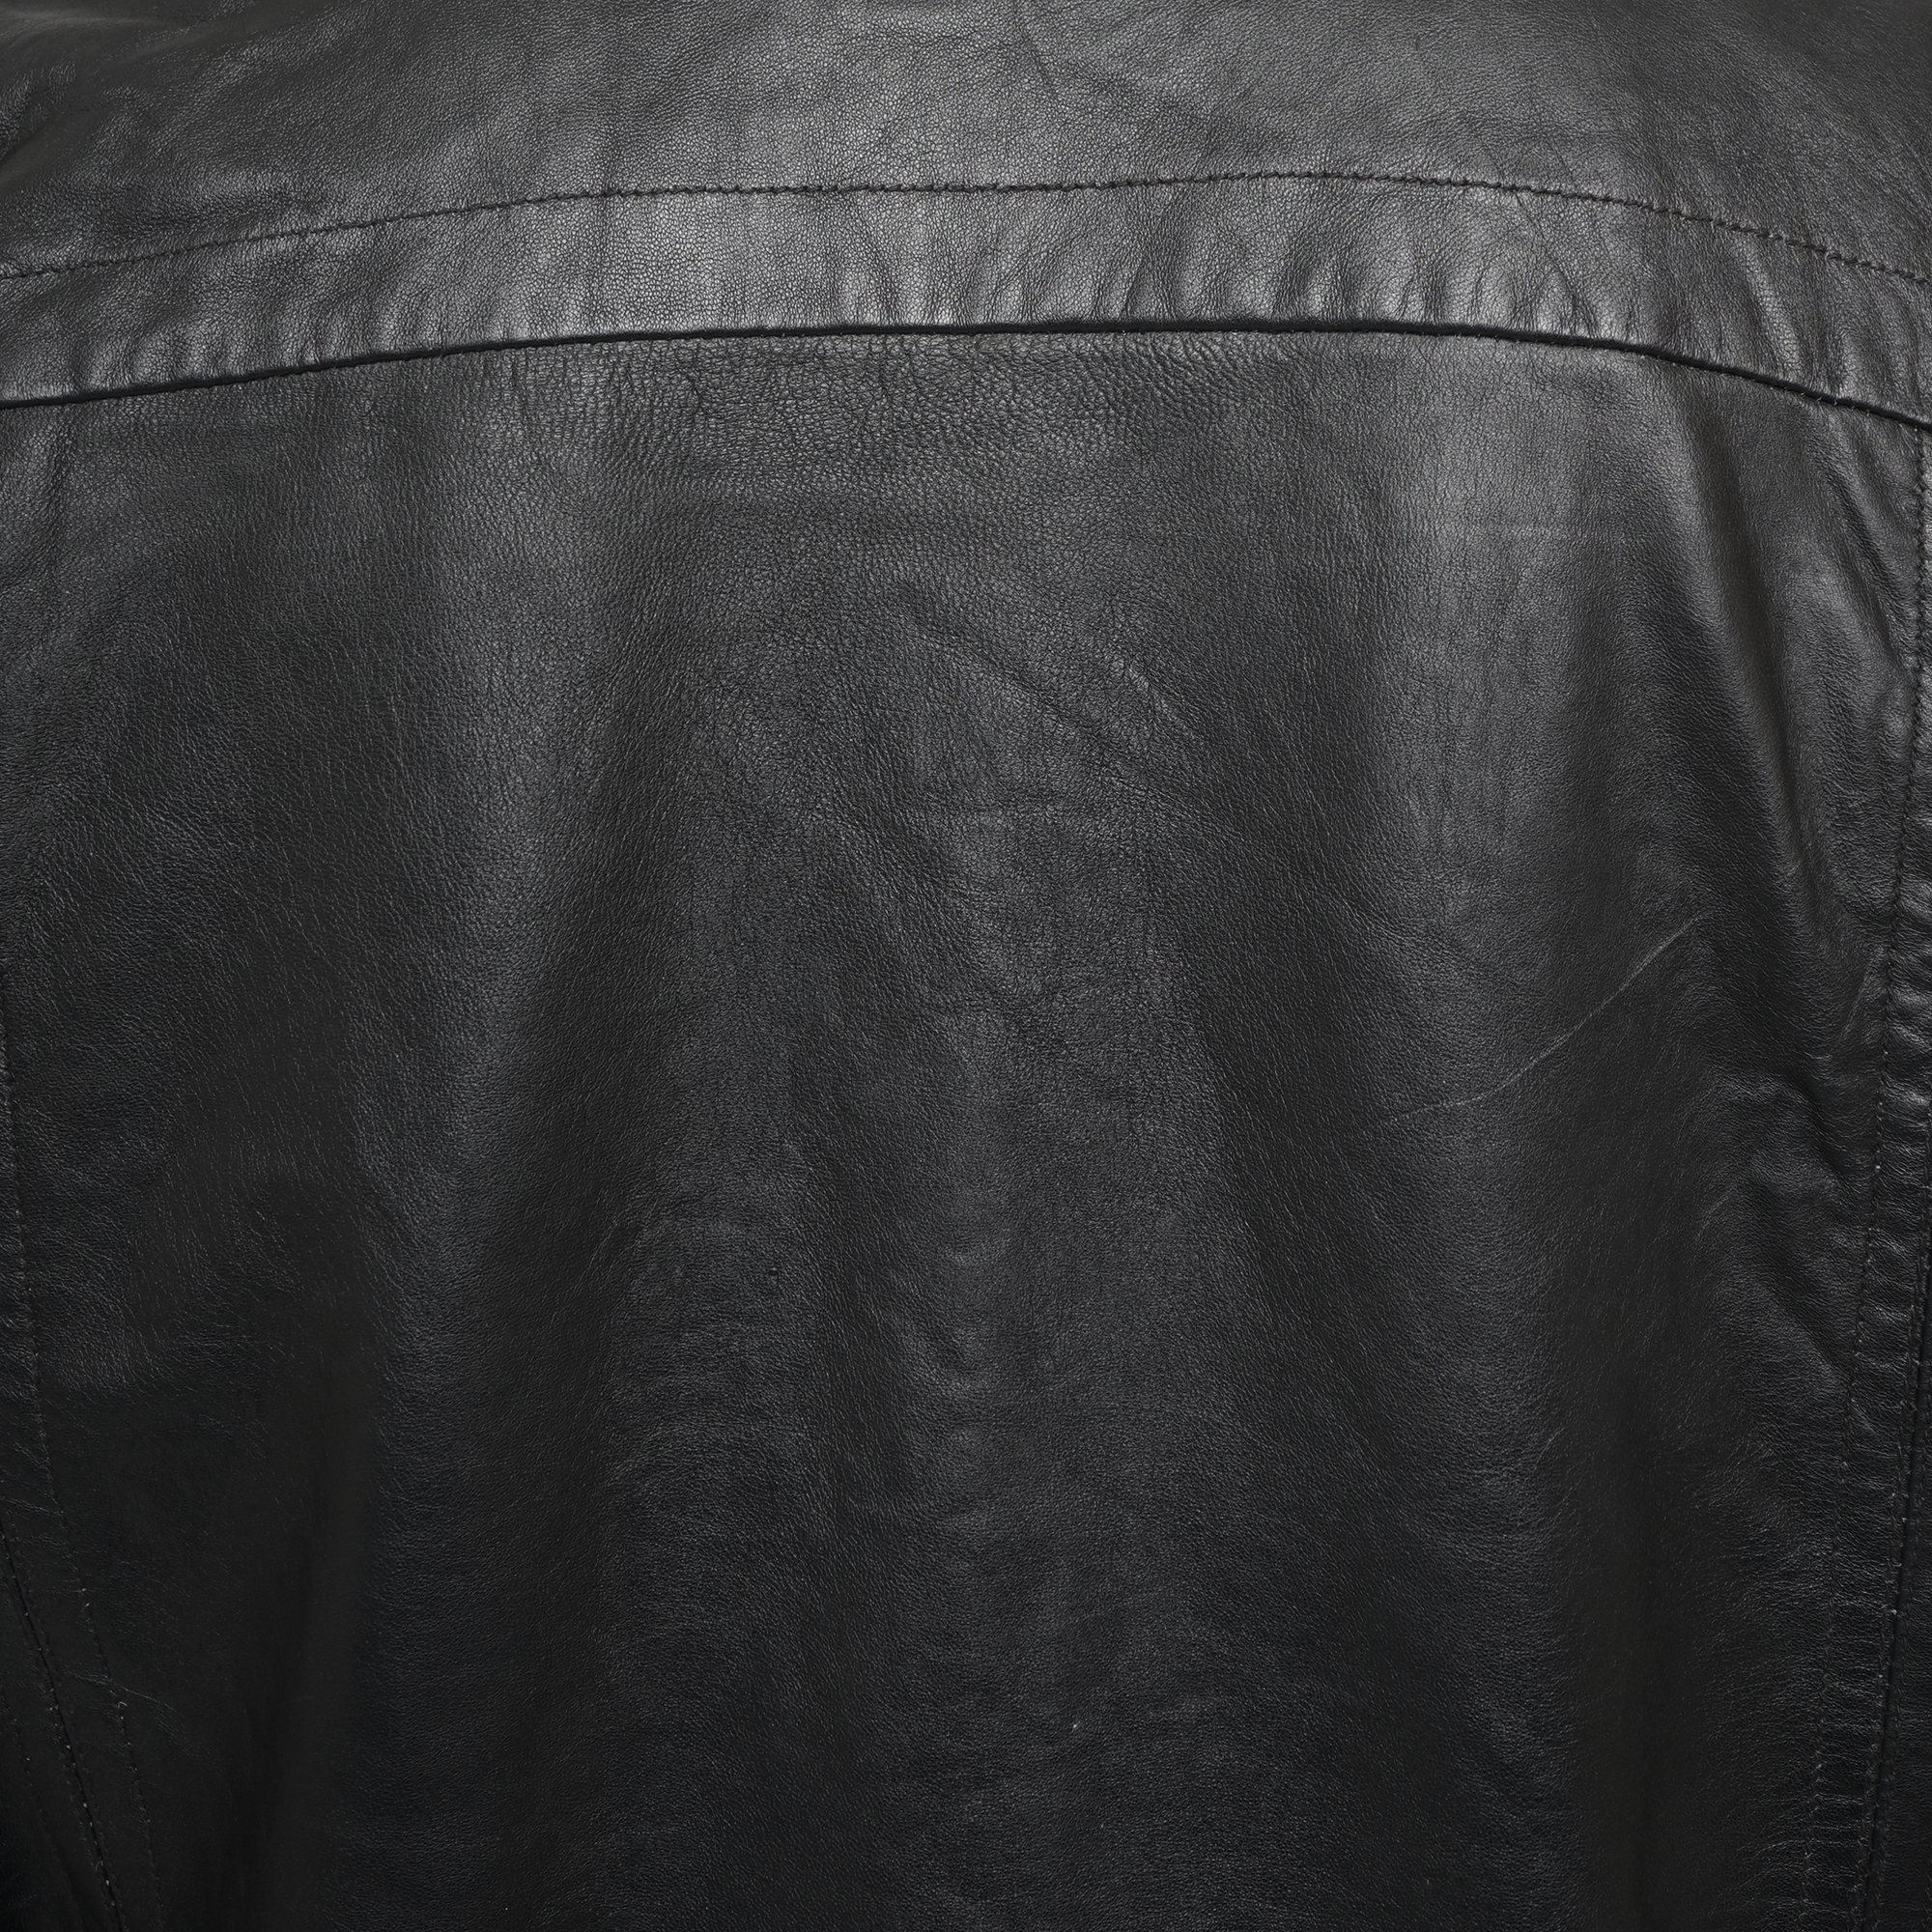 Approx. 800 x Men's Classic Heavy Duty Leather Jacket - Image 4 of 4